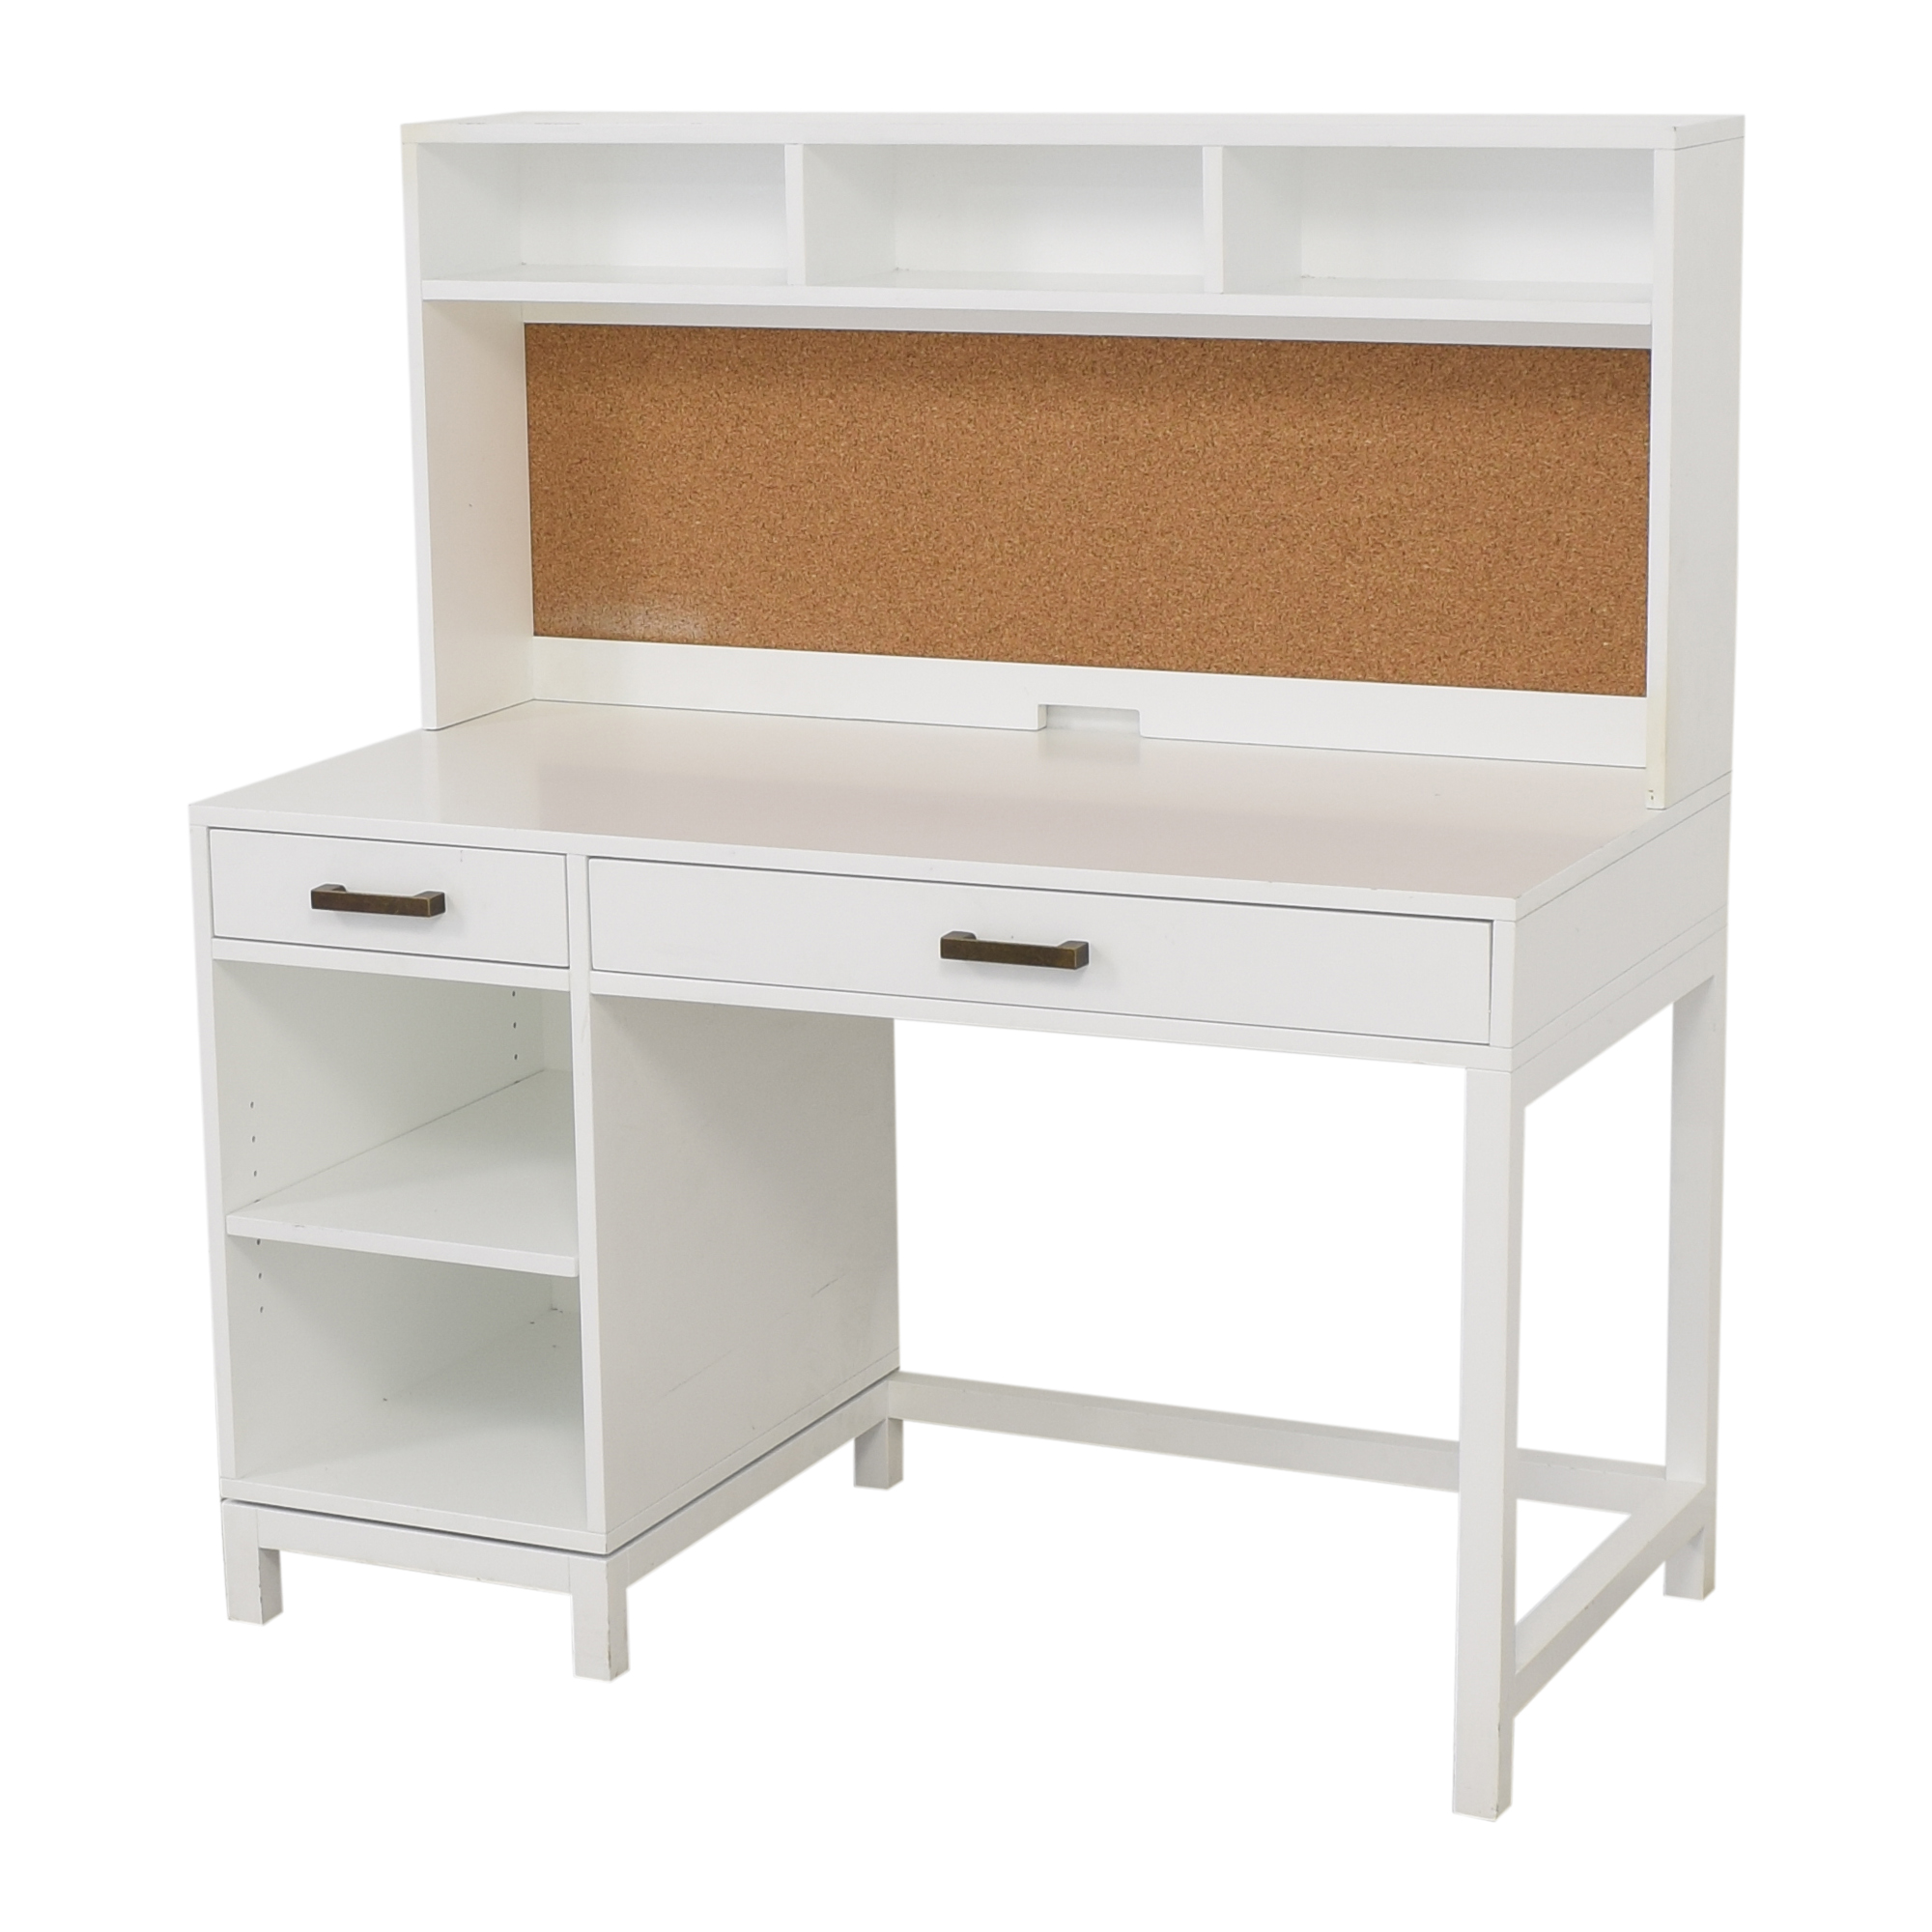 buy Land of Nod for Crate & Kids Parke Desk and Hutch Land of Nod